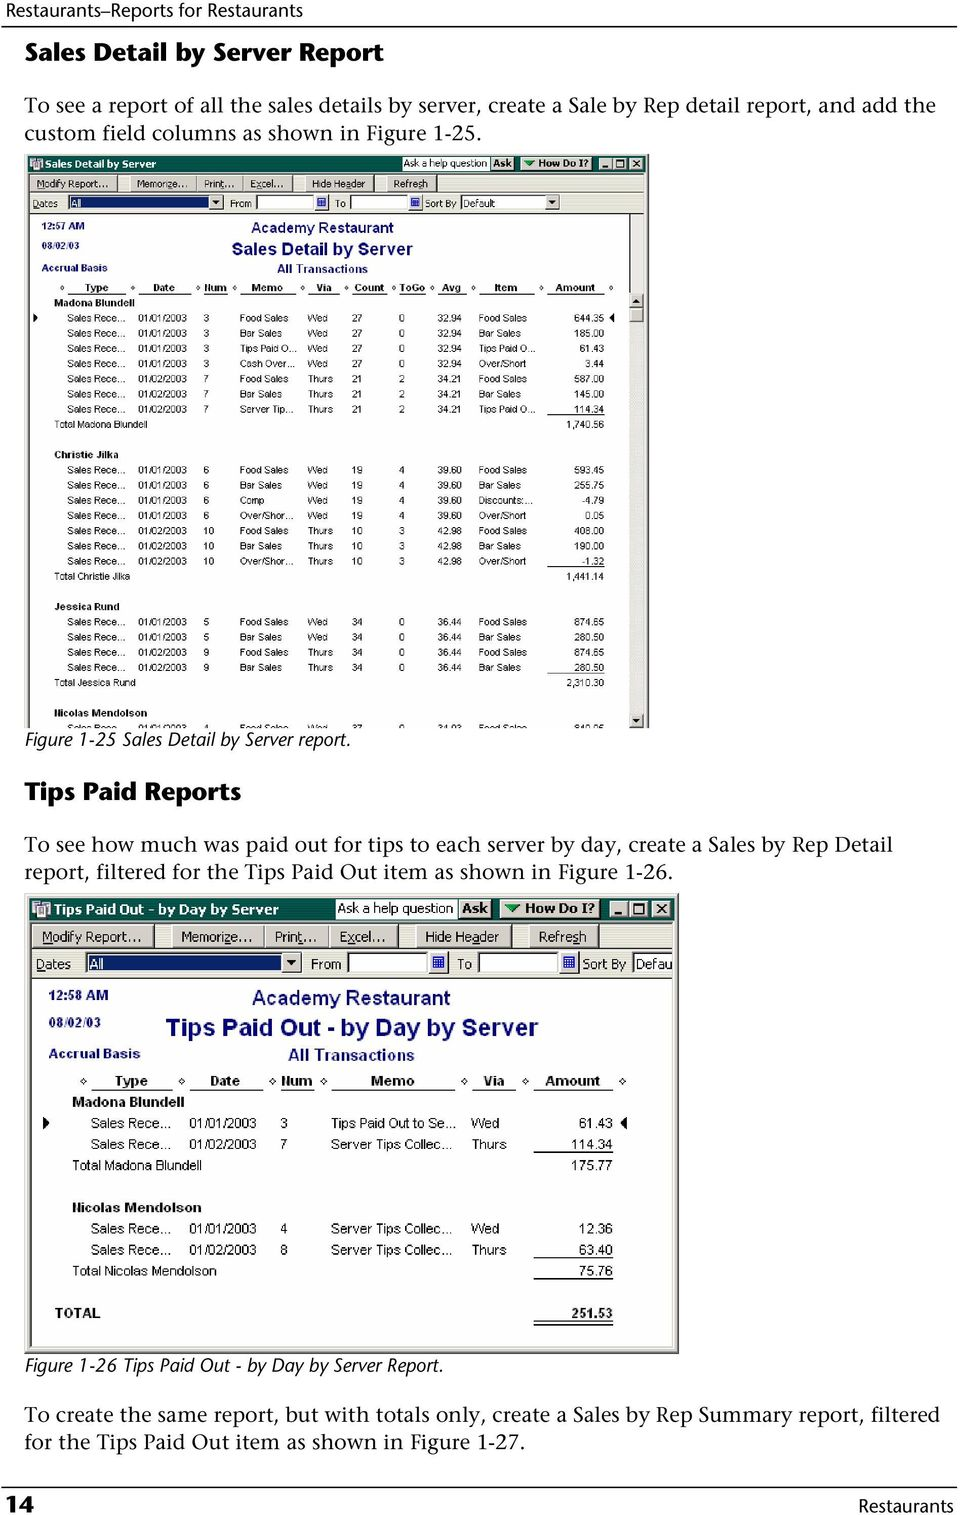 Tips Paid Reports To see how much was paid out for tips to each server by day, create a Sales by Rep Detail report, filtered for the Tips Paid Out item as shown